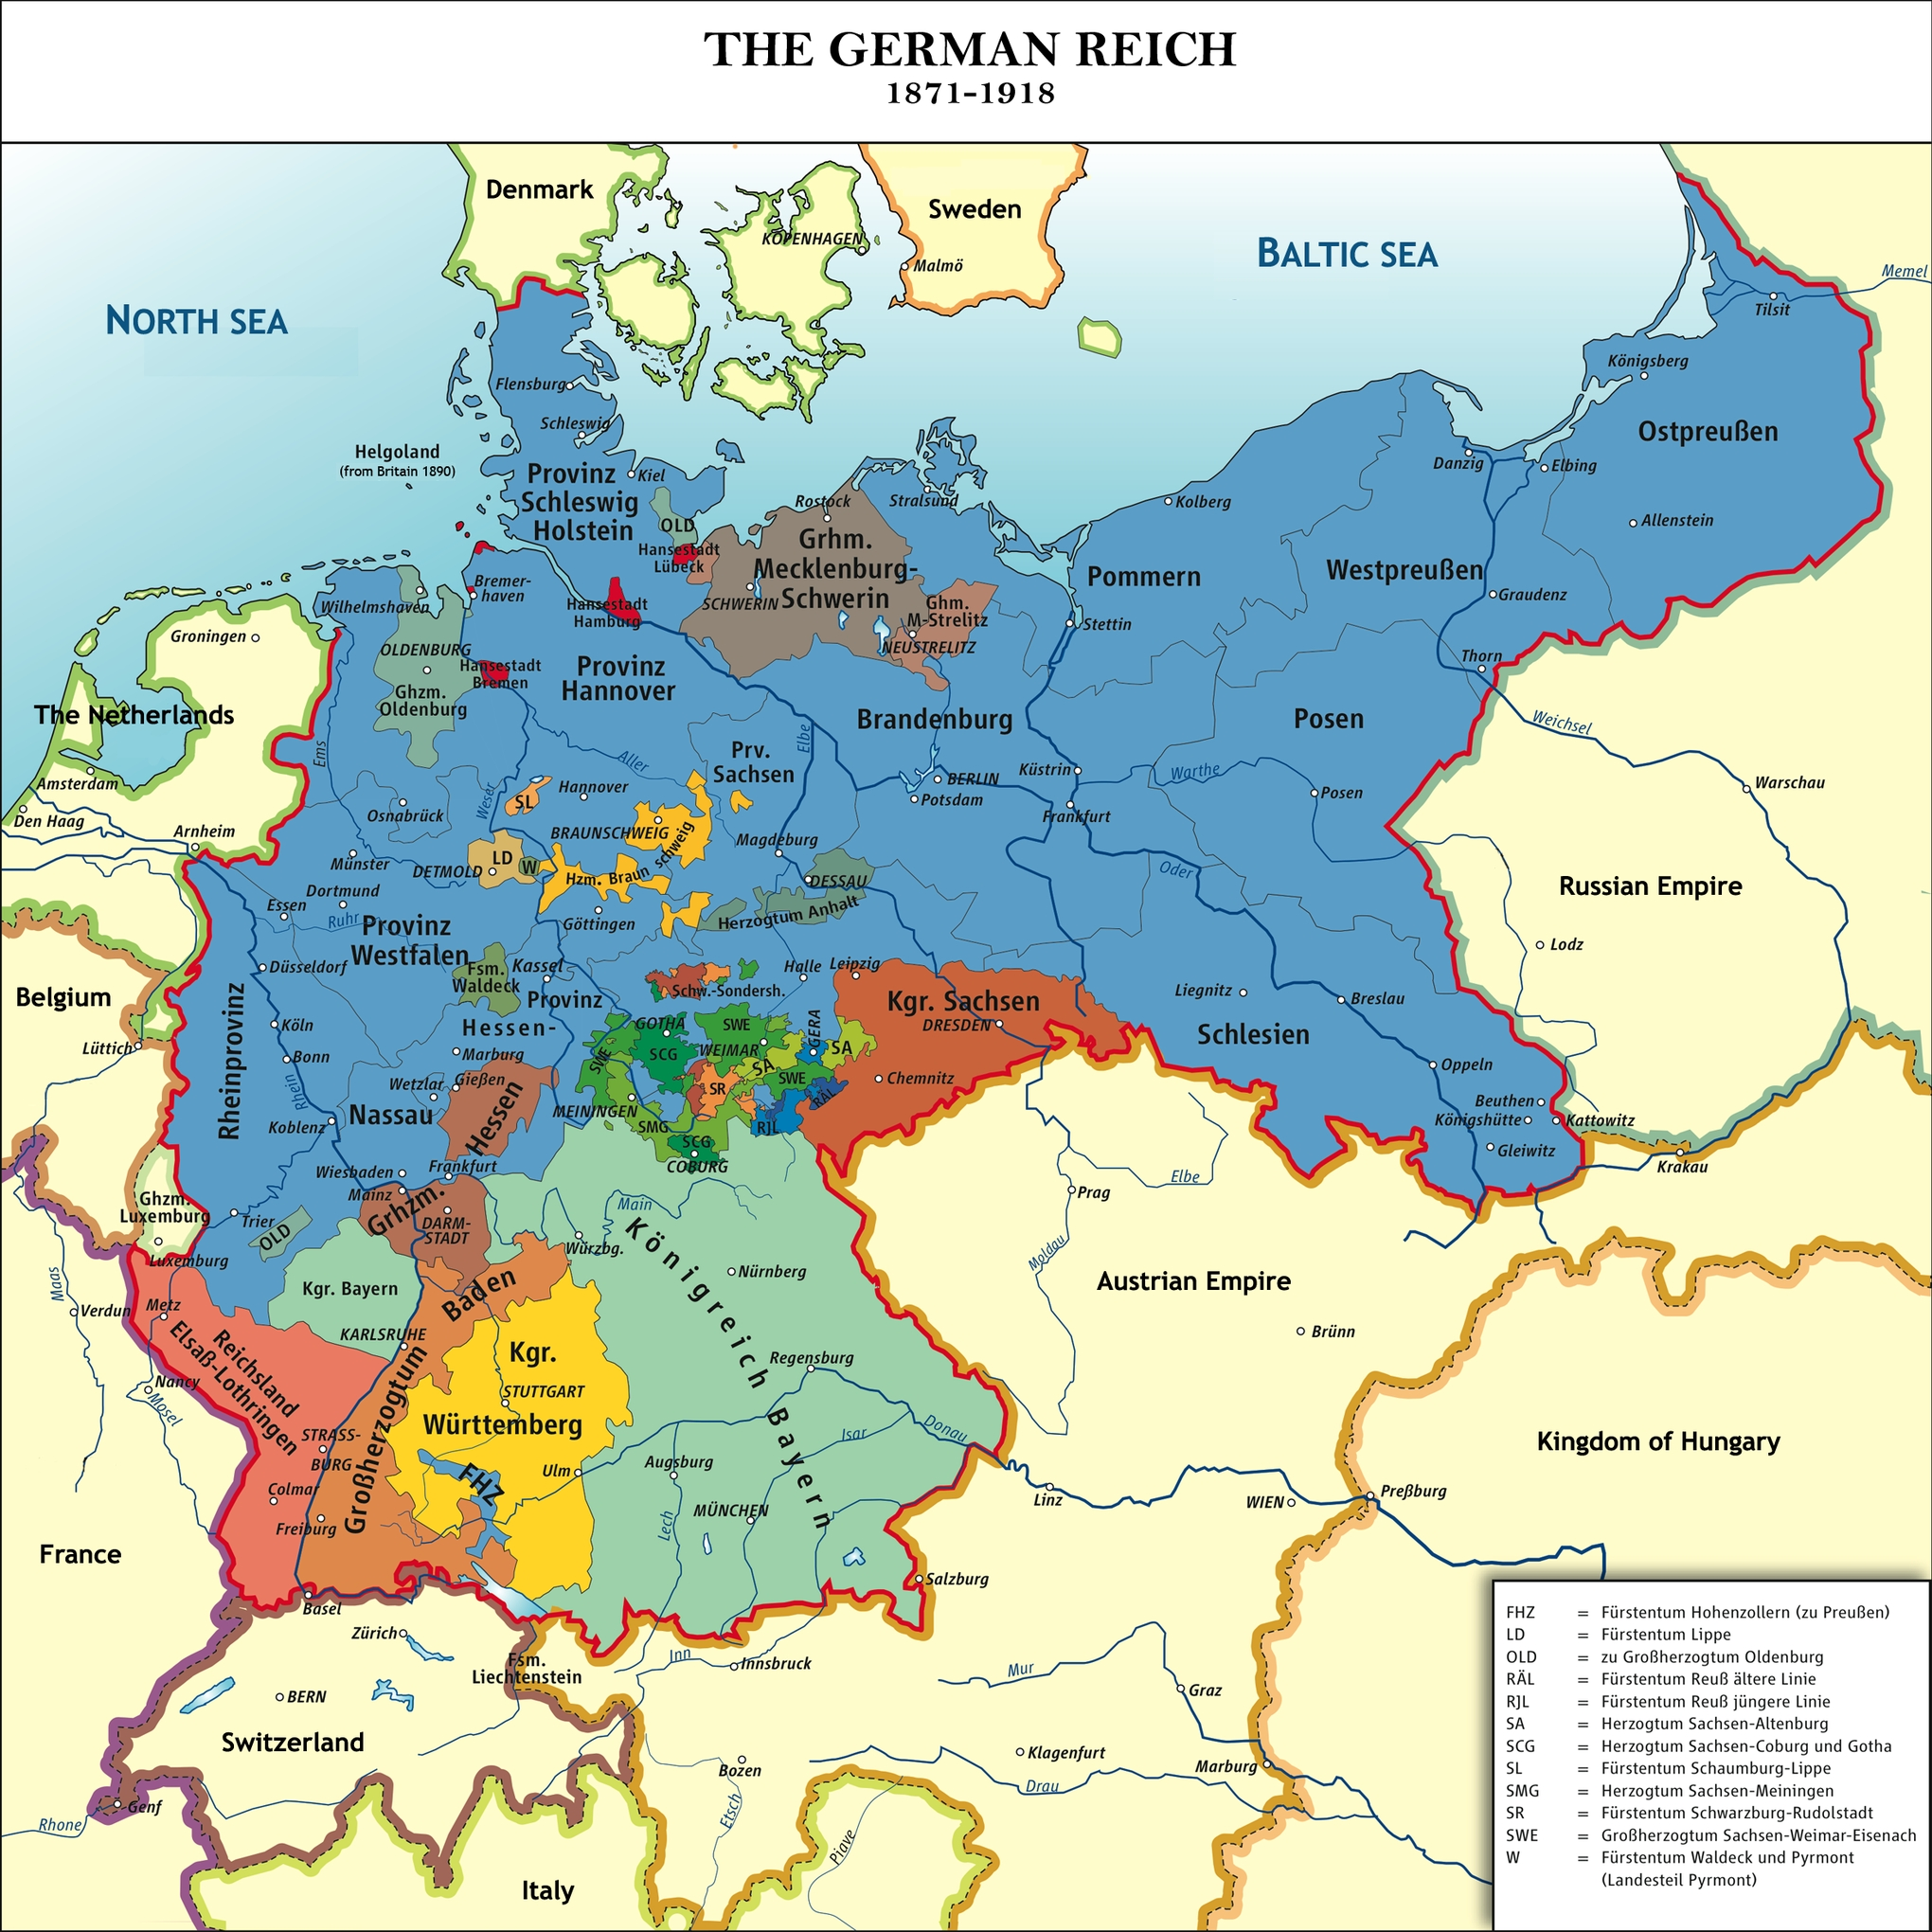 40 Maps That Explain World War I | Vox throughout Map Of Germany Before Unification